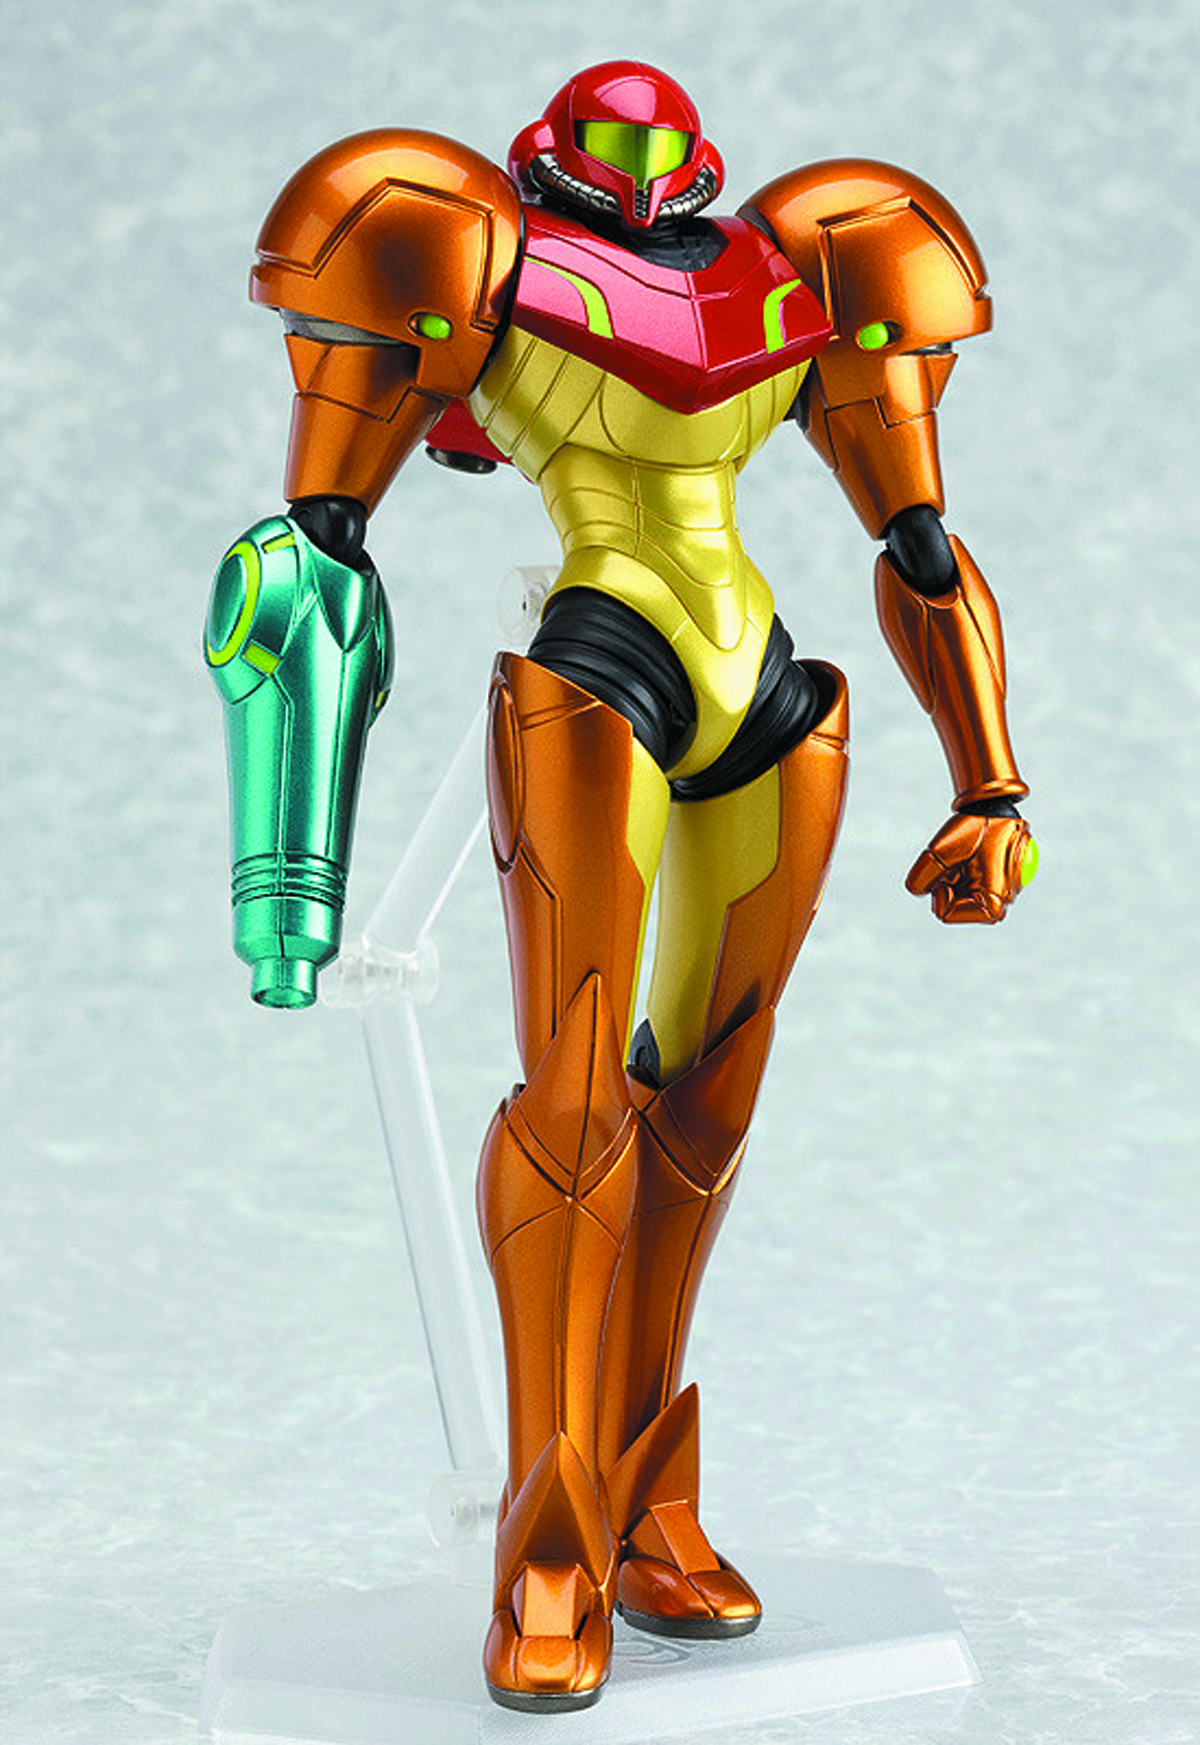 Good Smile Company METROID: OTHER M SAMUS ARAN FIGMA ACTION FIGURE PartNumber: 004V005937822000P KsnValue: 004V005937822000 MfgPartNumber: JUN132073